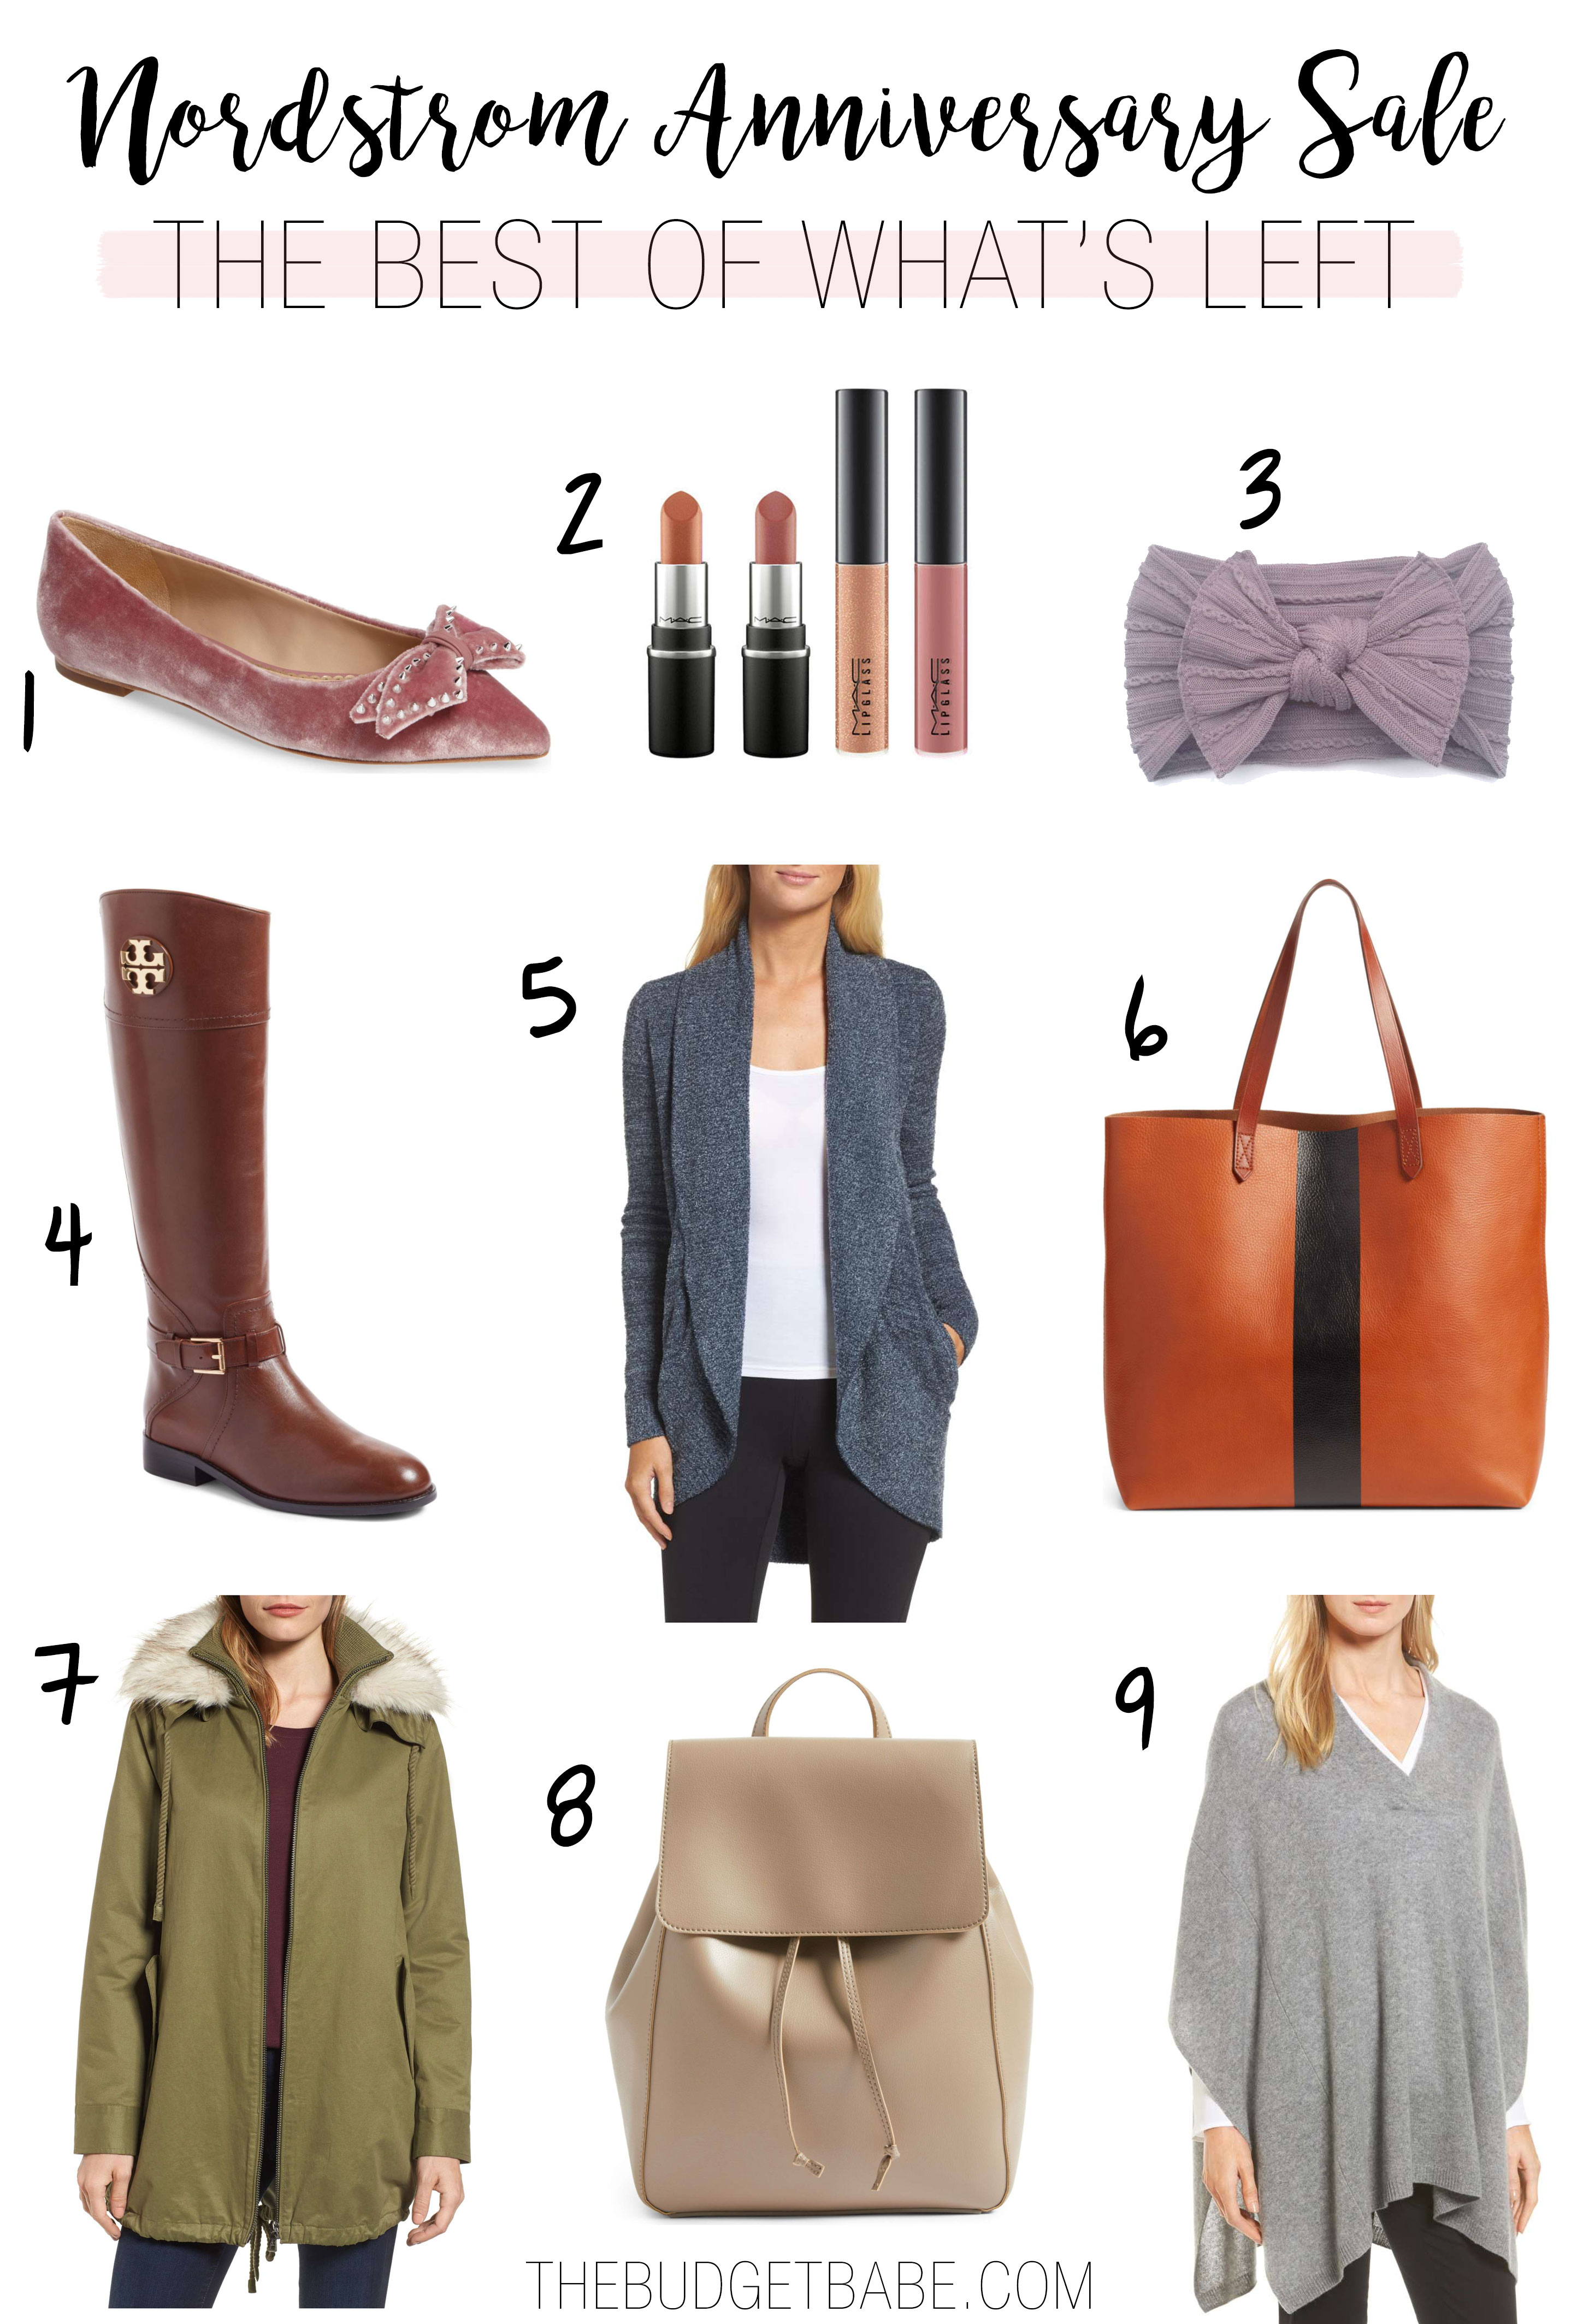 Nordstrom Anniversary picks to scoop up before the sale ends.